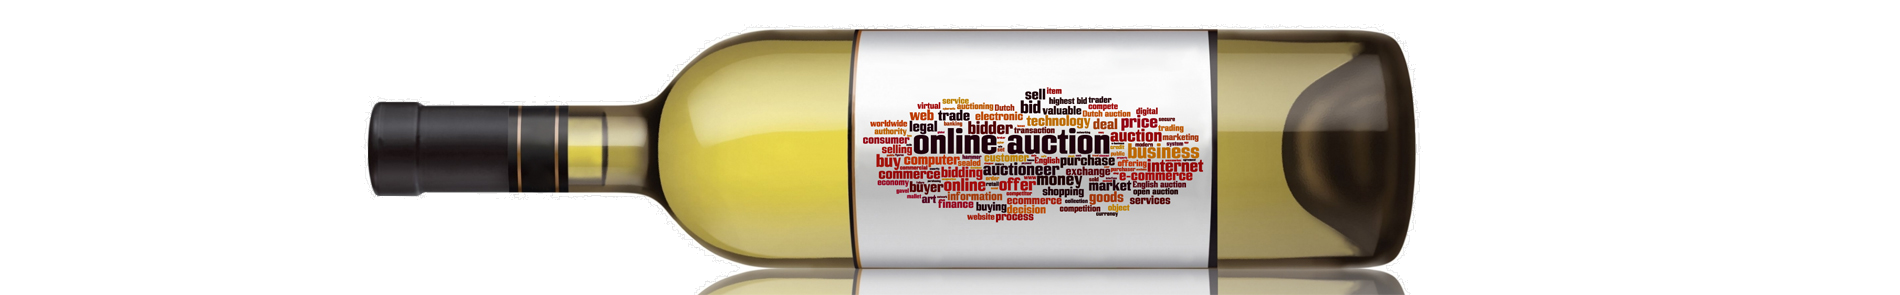 Wine-eauction_transparent